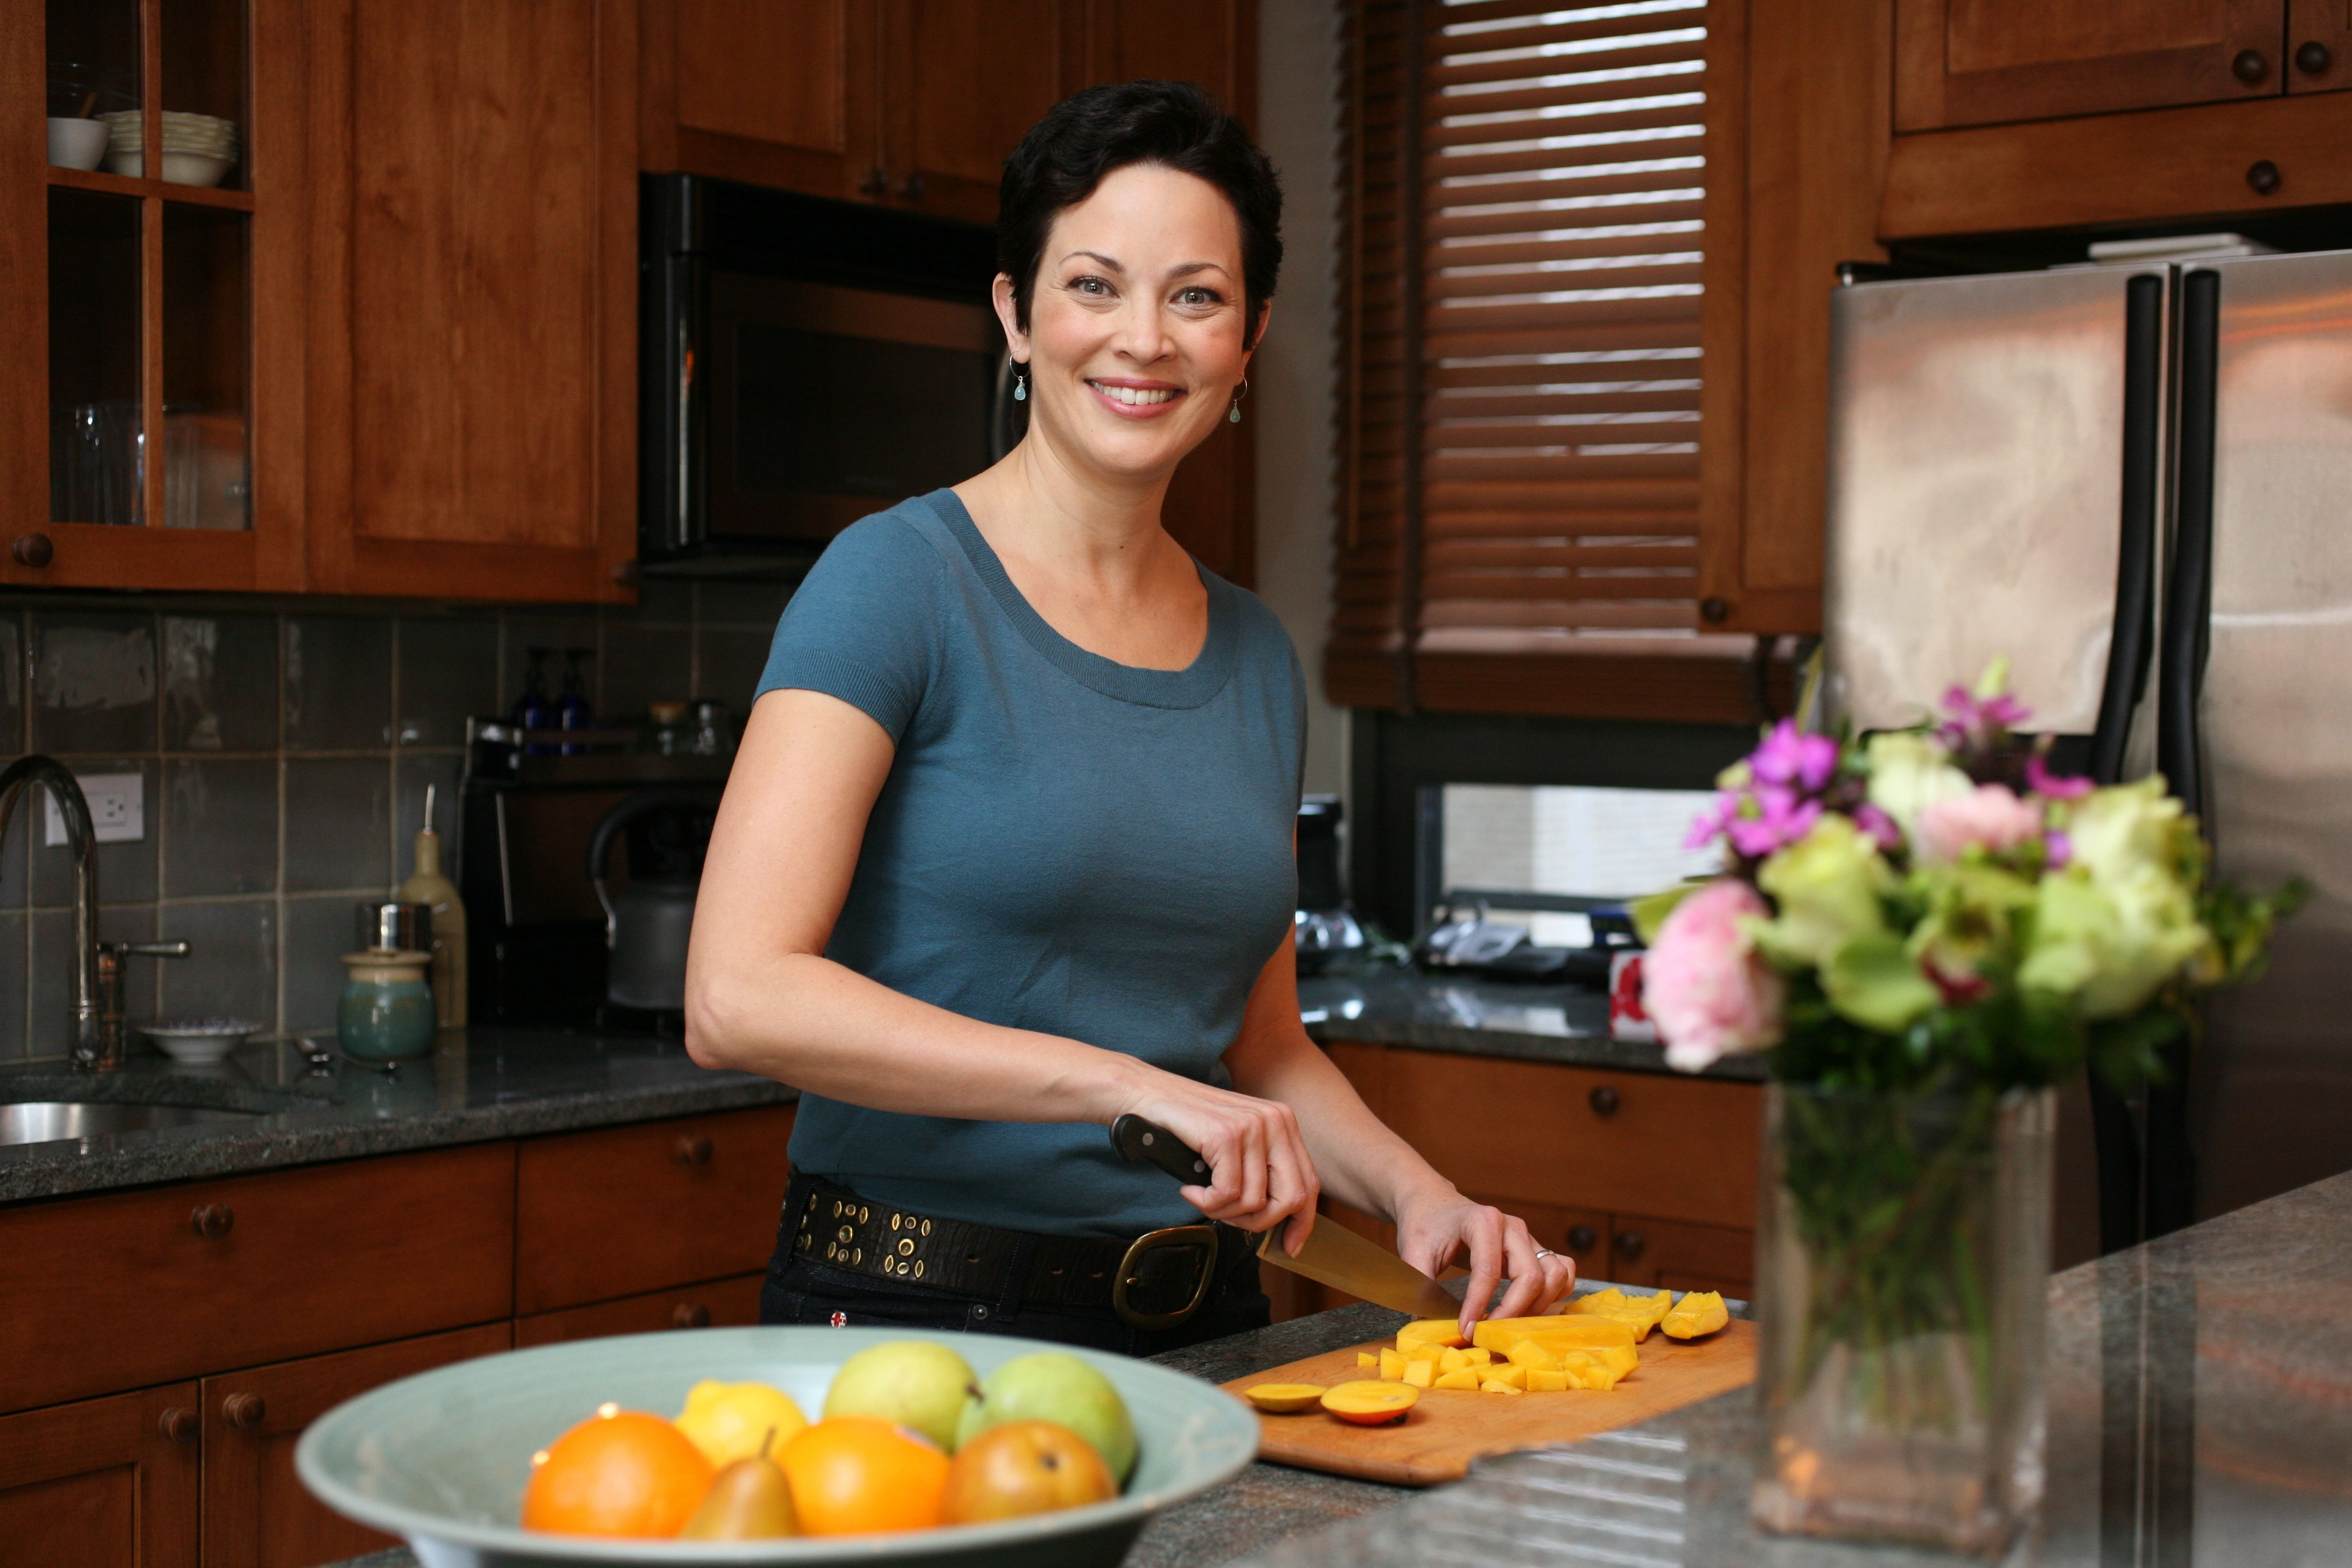 A Cooking Show Host S Recipe For Kitchen Success The New York Sun Cooking Show Hosts Cooking Channel Recipes Cooking Show